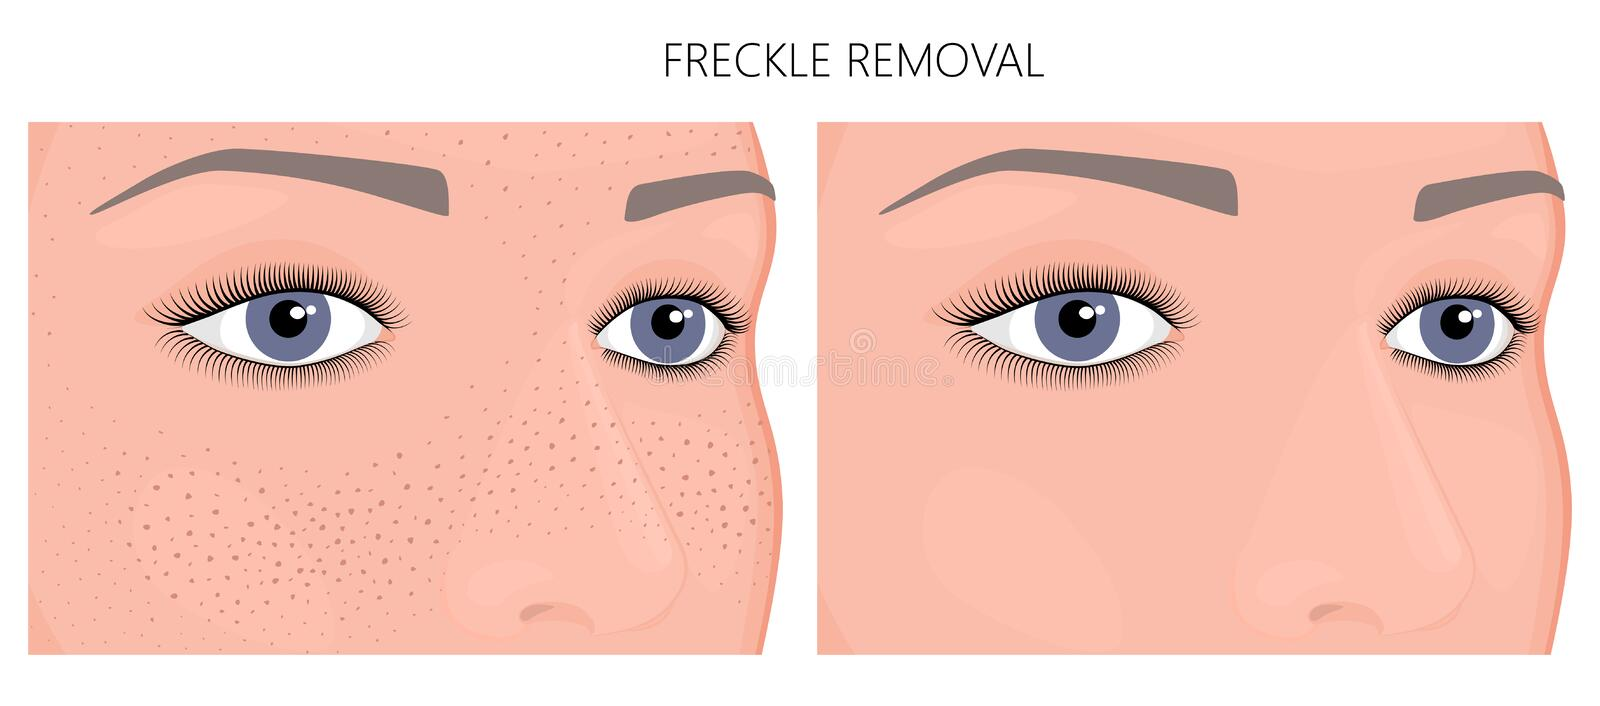 Plastic surgery_Freckle Removal. Vector illustration. Freckle removal on woman face half turn before, after cosmetic procedure. Close up view. For advertising of stock illustration